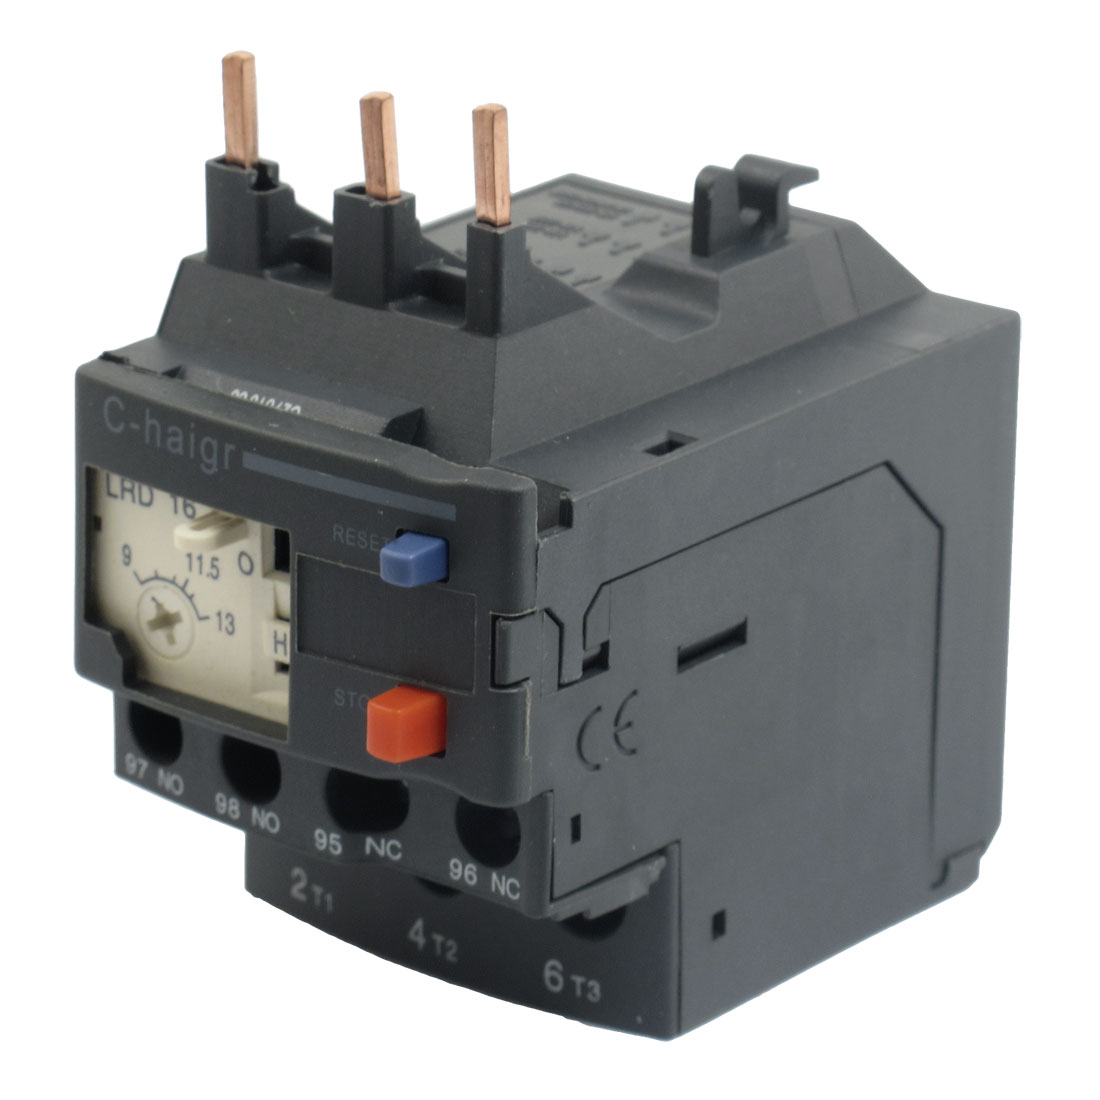 3 Pole AC 9A - 13A Black Electric Thermal Overload Relay 1 NO 1 NC